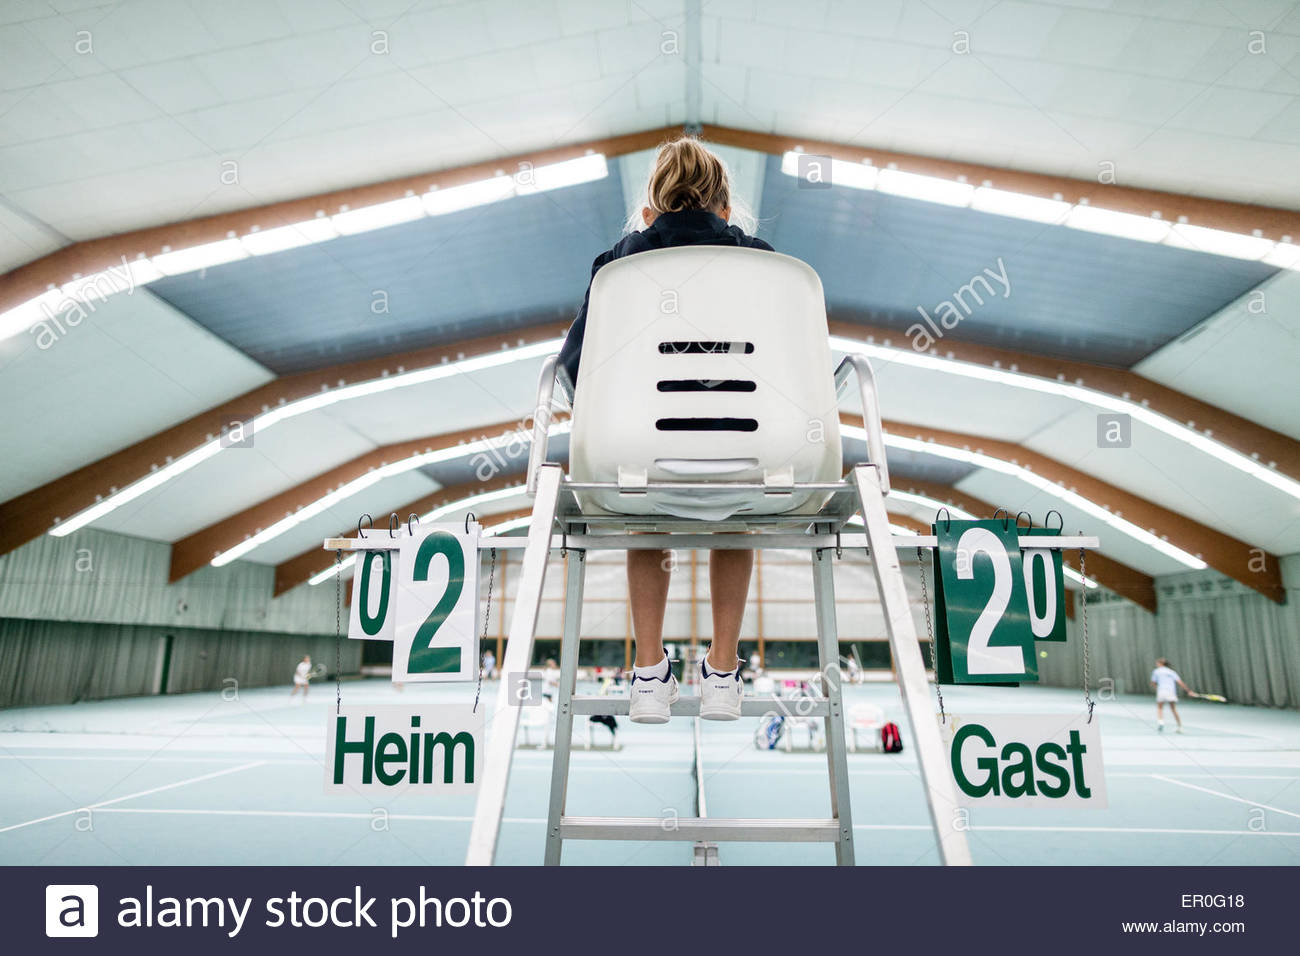 referee chair, indoor tennis court - Stock Image